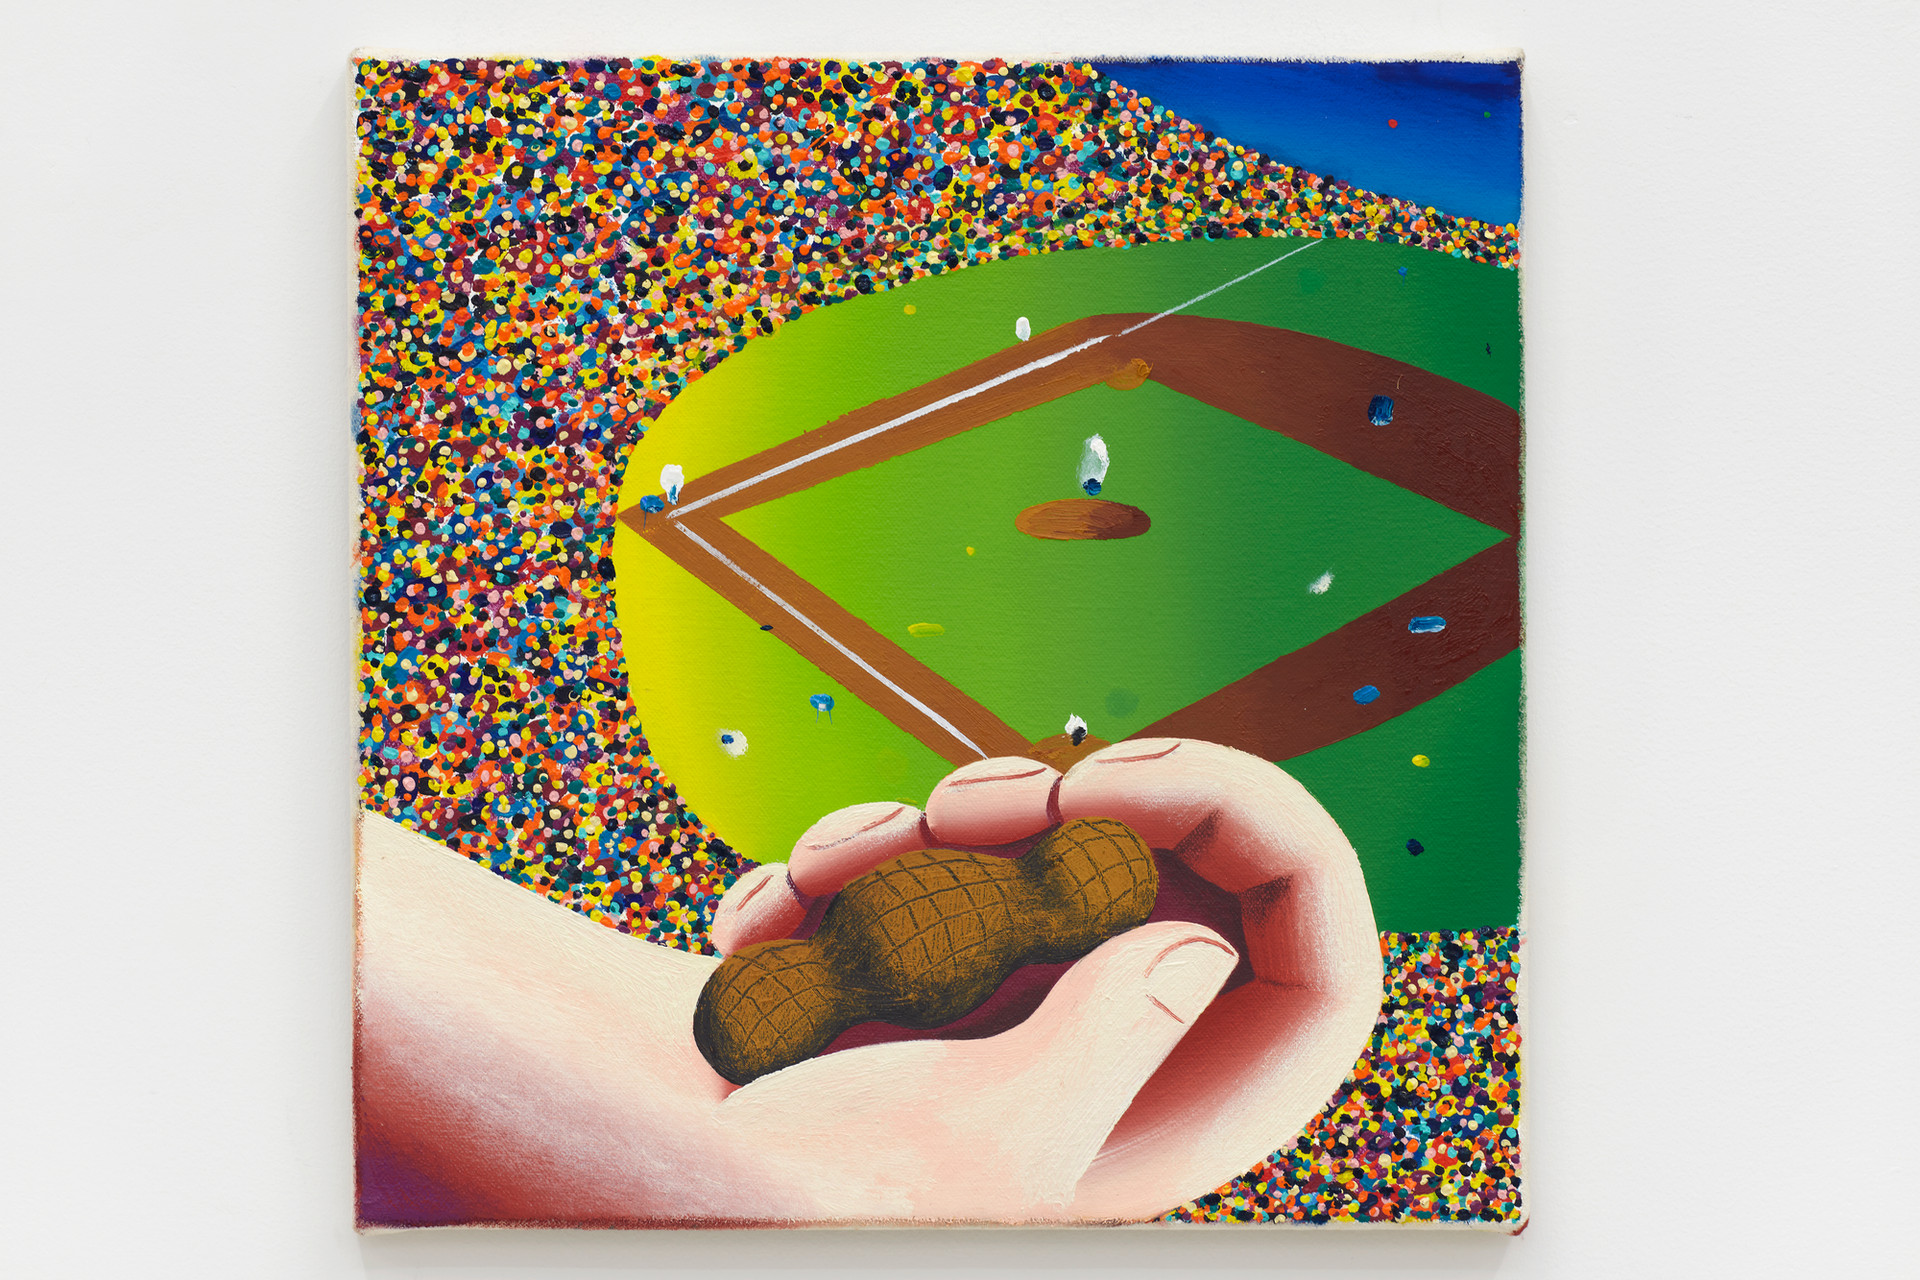 Eleanor Swordy  Ball Game, 2019  Oil on canvas  12 x 12 inches